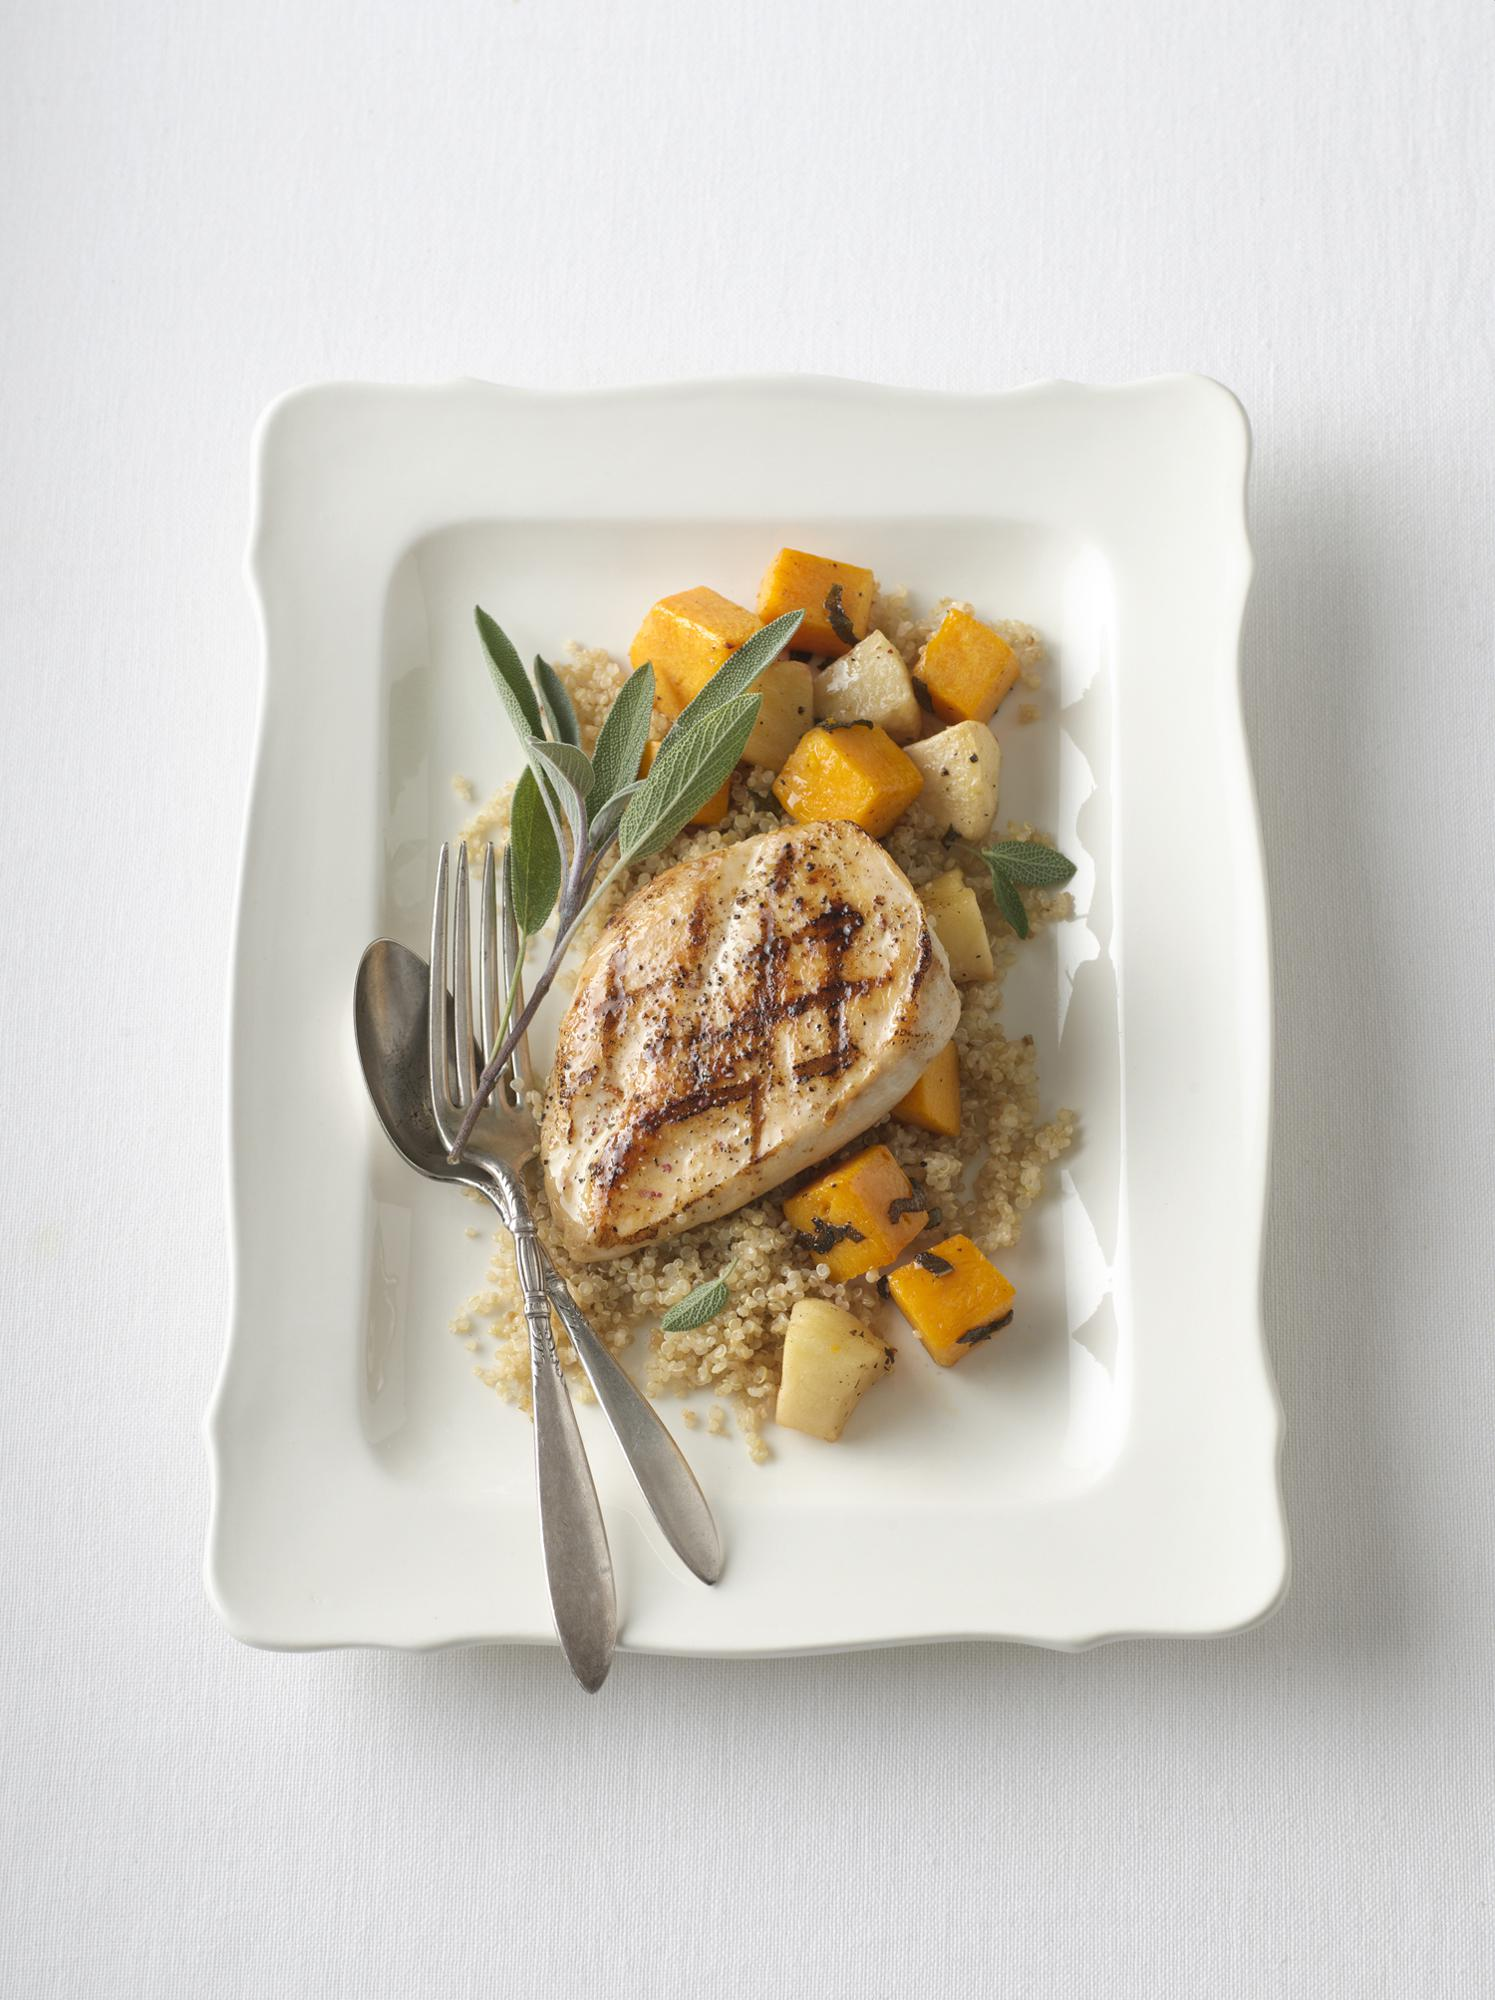 Grilled Chicken with Sage-Infused Quinoa & Harvest Vegetable Bake